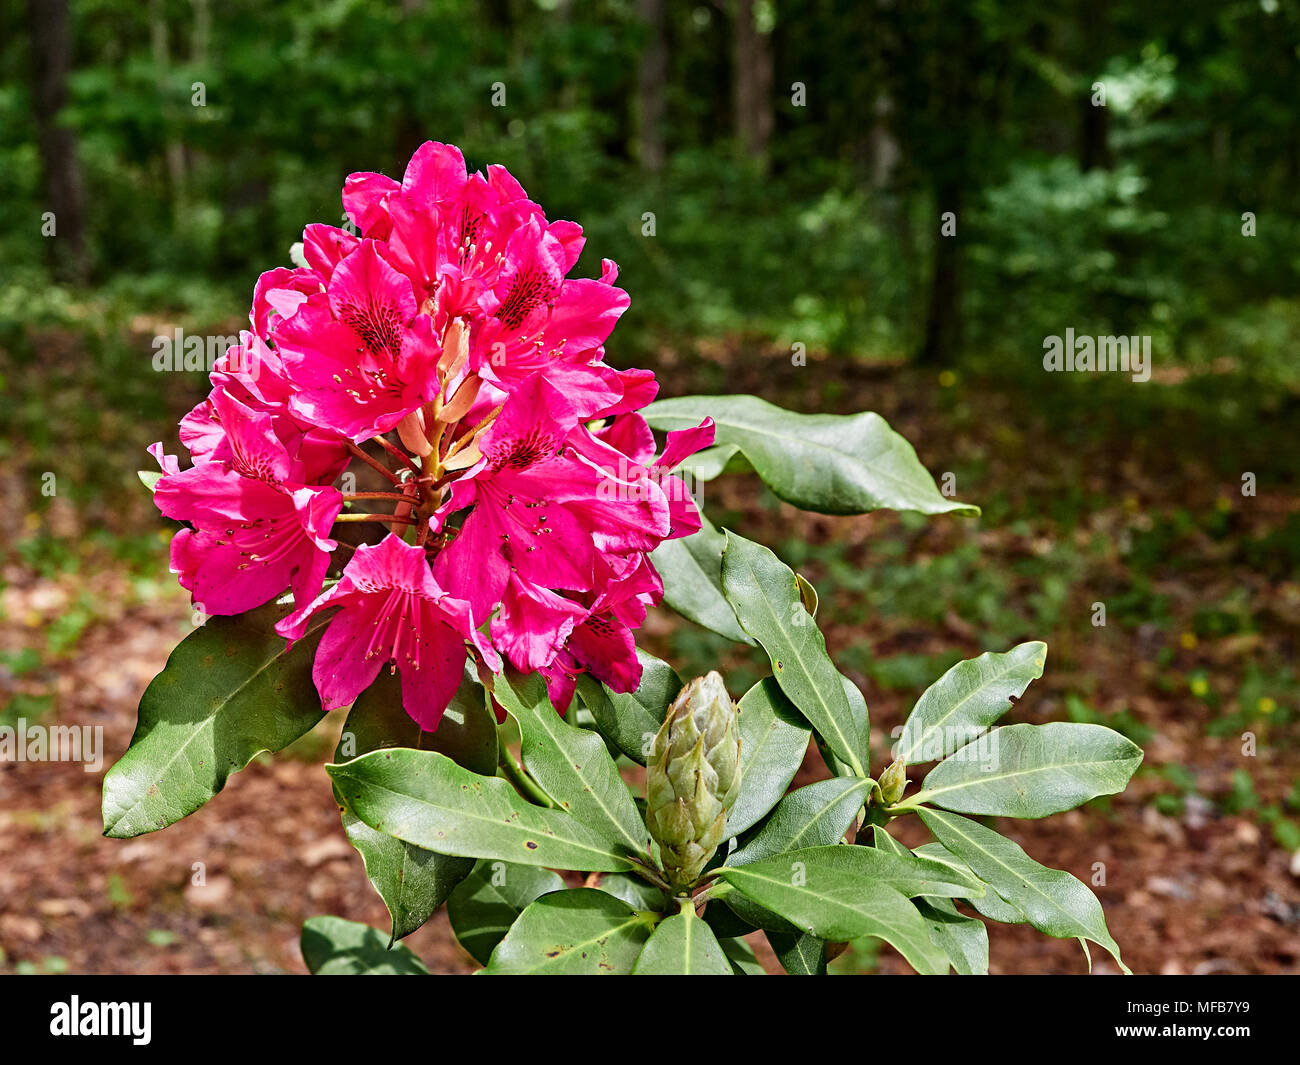 Dark red Nova Zembla Rhododendron plant blooming in a garden setting, Montgomery Alabama, USA. - Stock Image